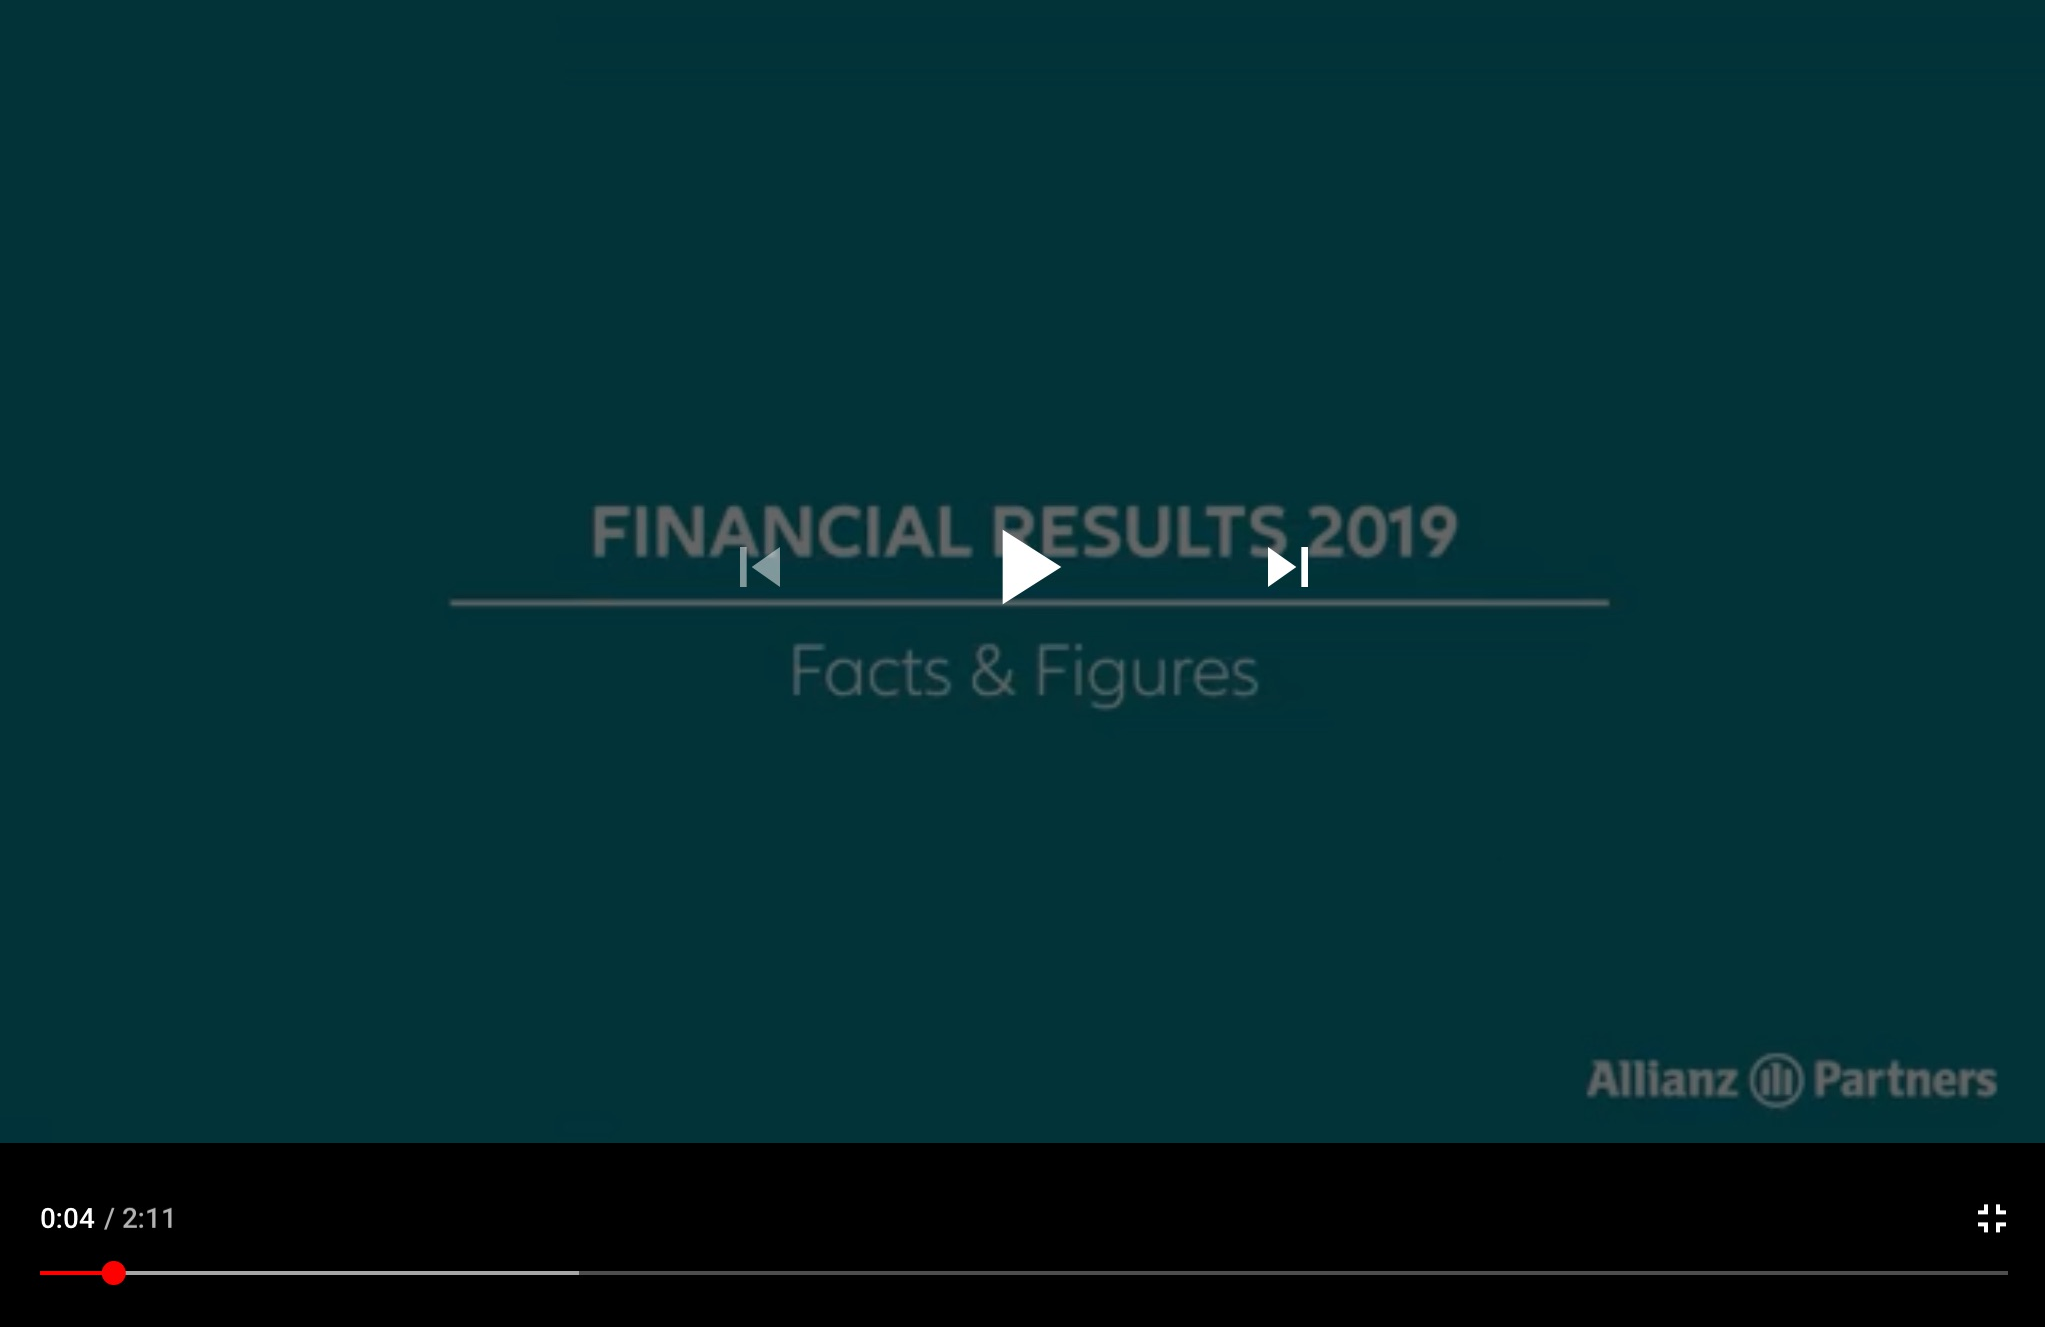 Allianz Partners - Financial results 2019